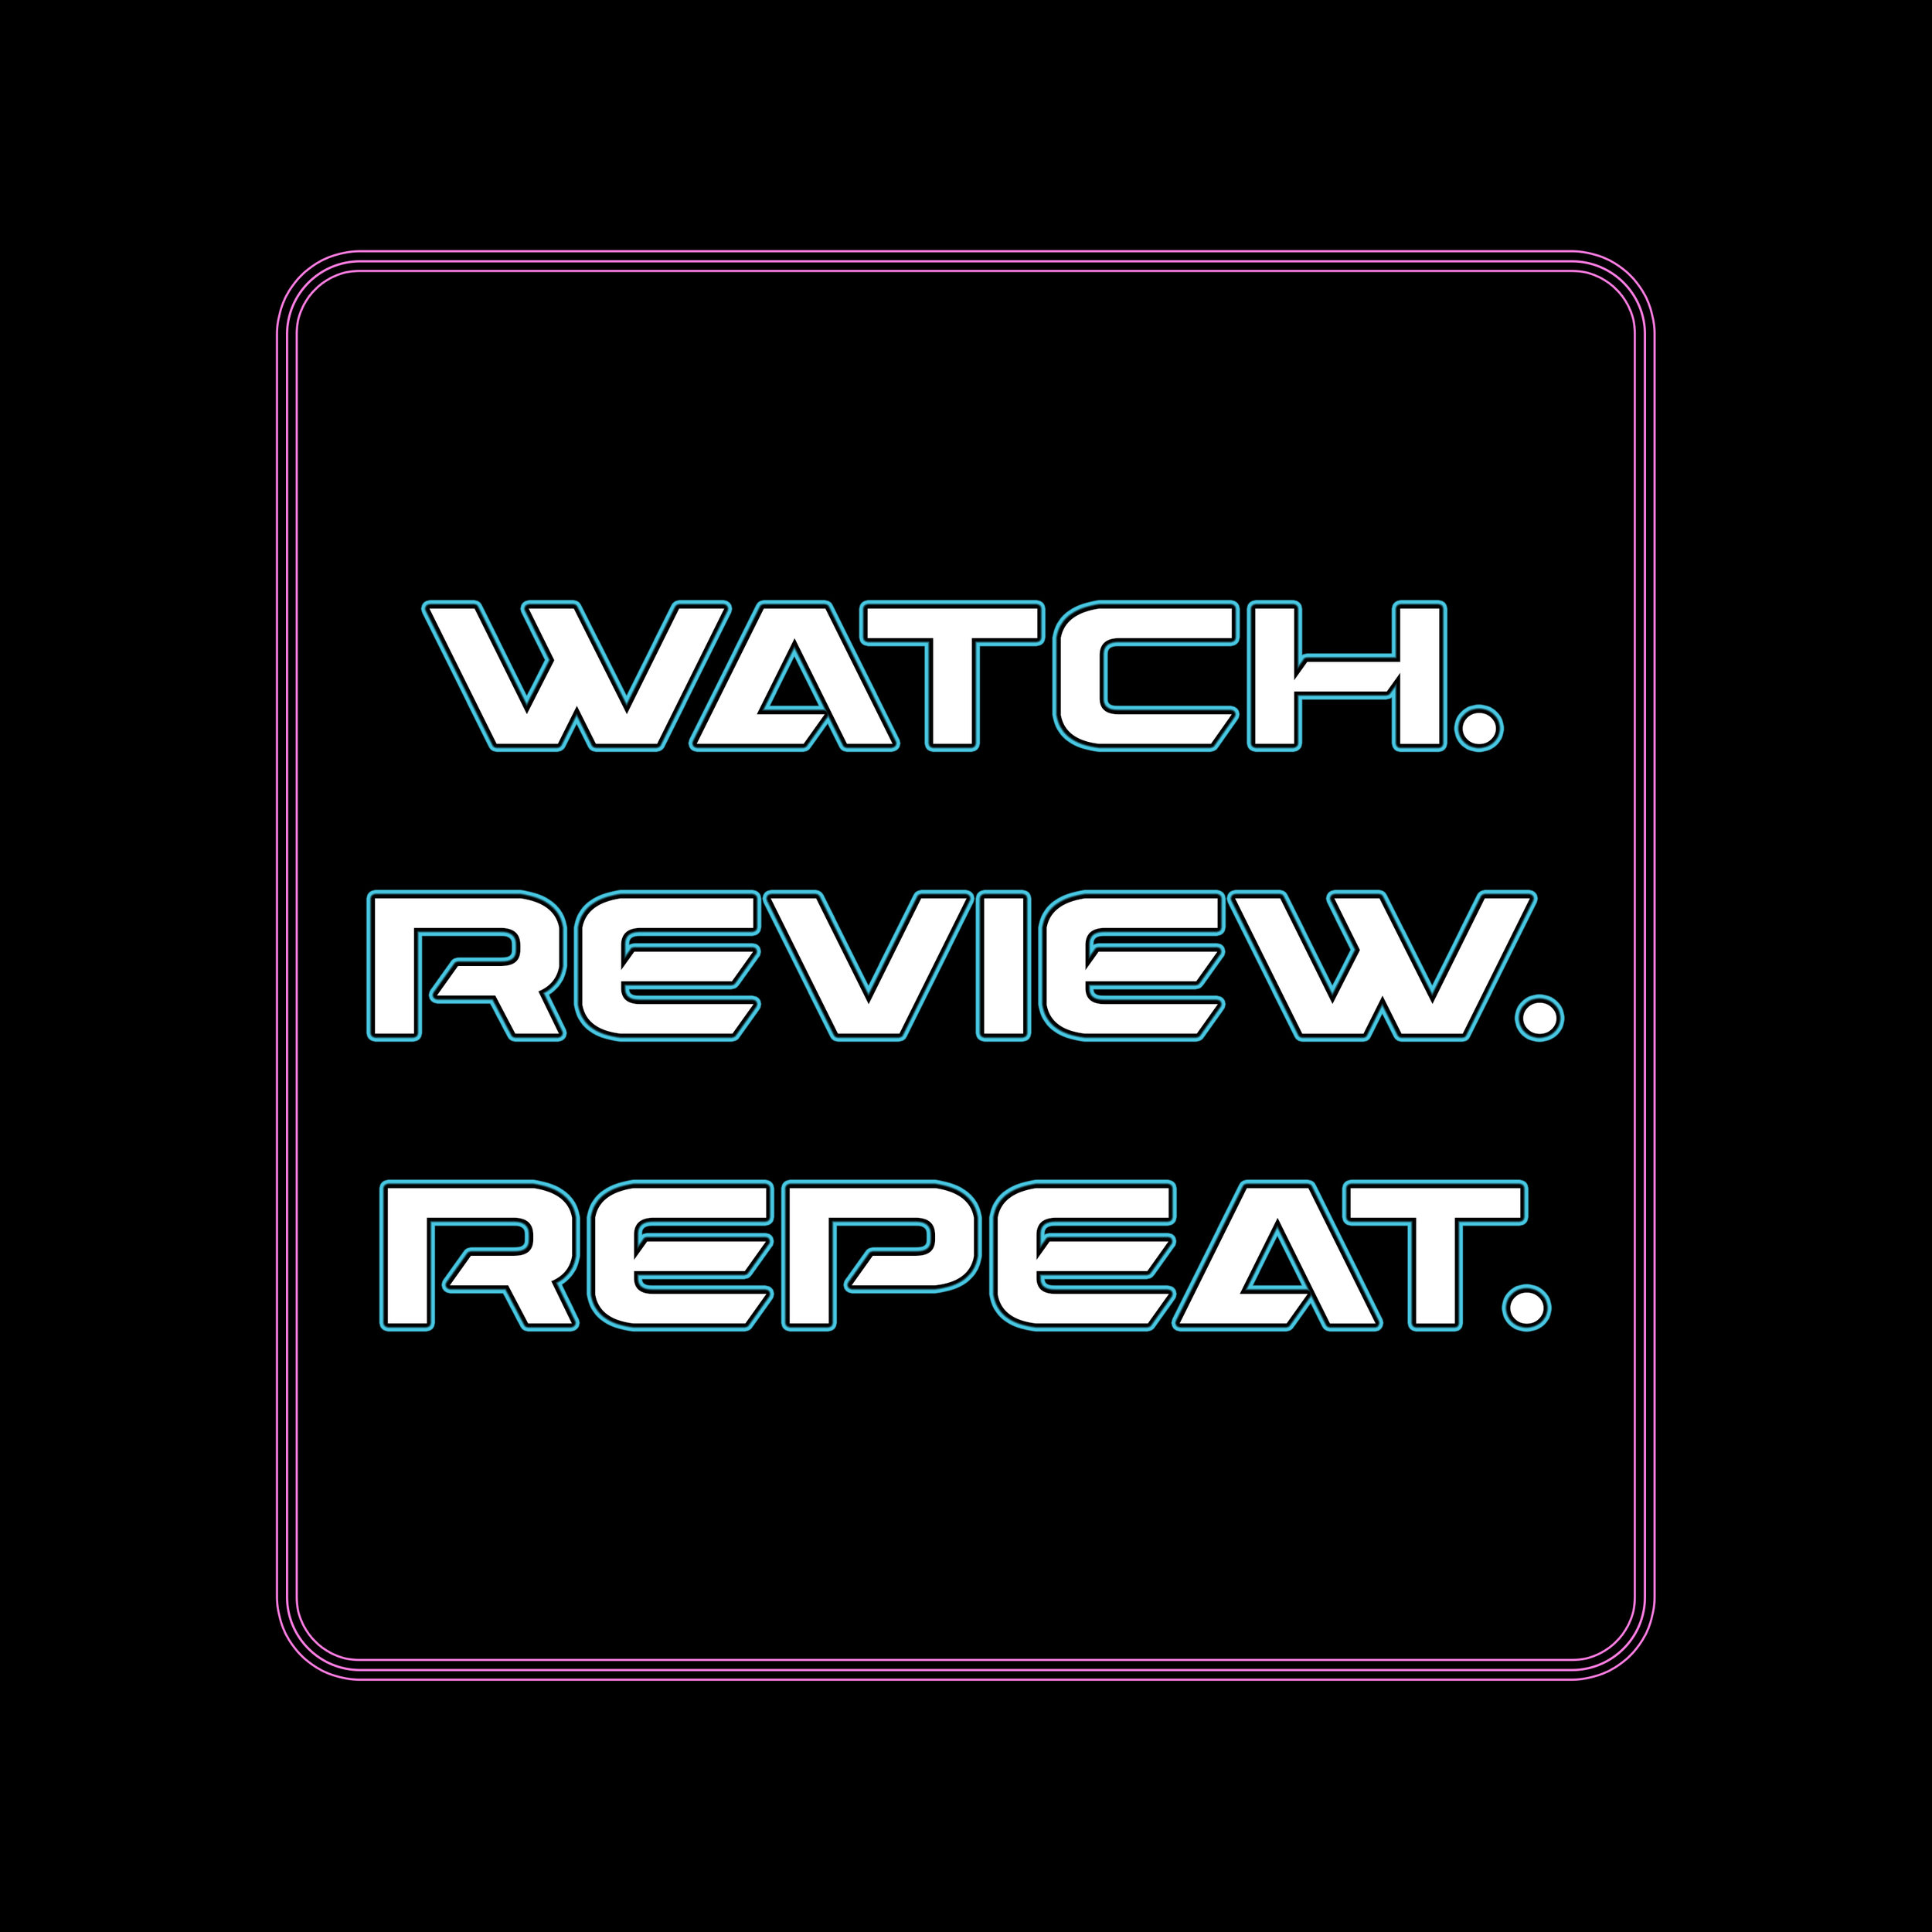 WATCH REVIEW REPEAT LOGO.jpg